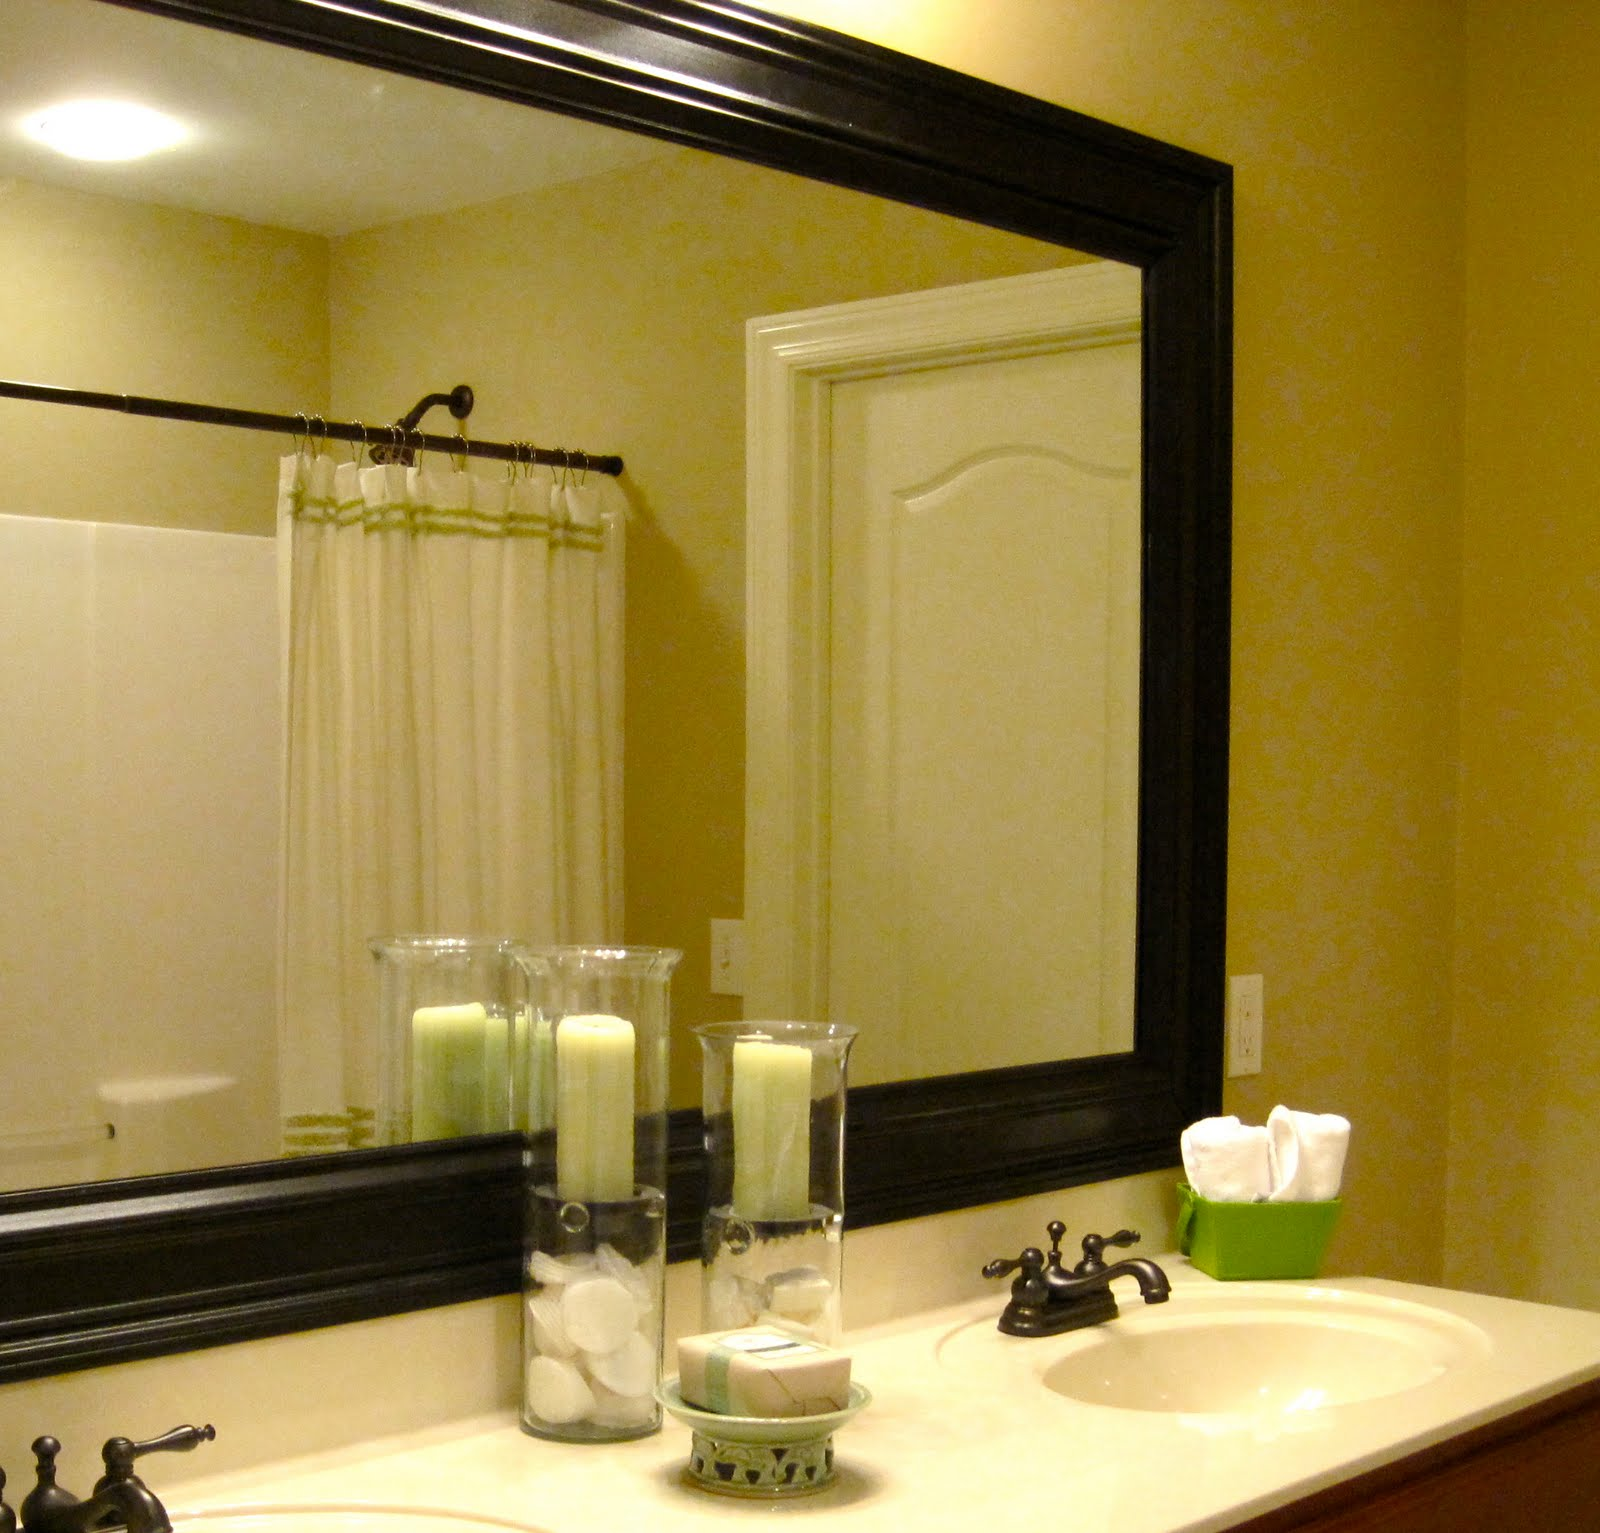 Framed-bathroom-mirrors